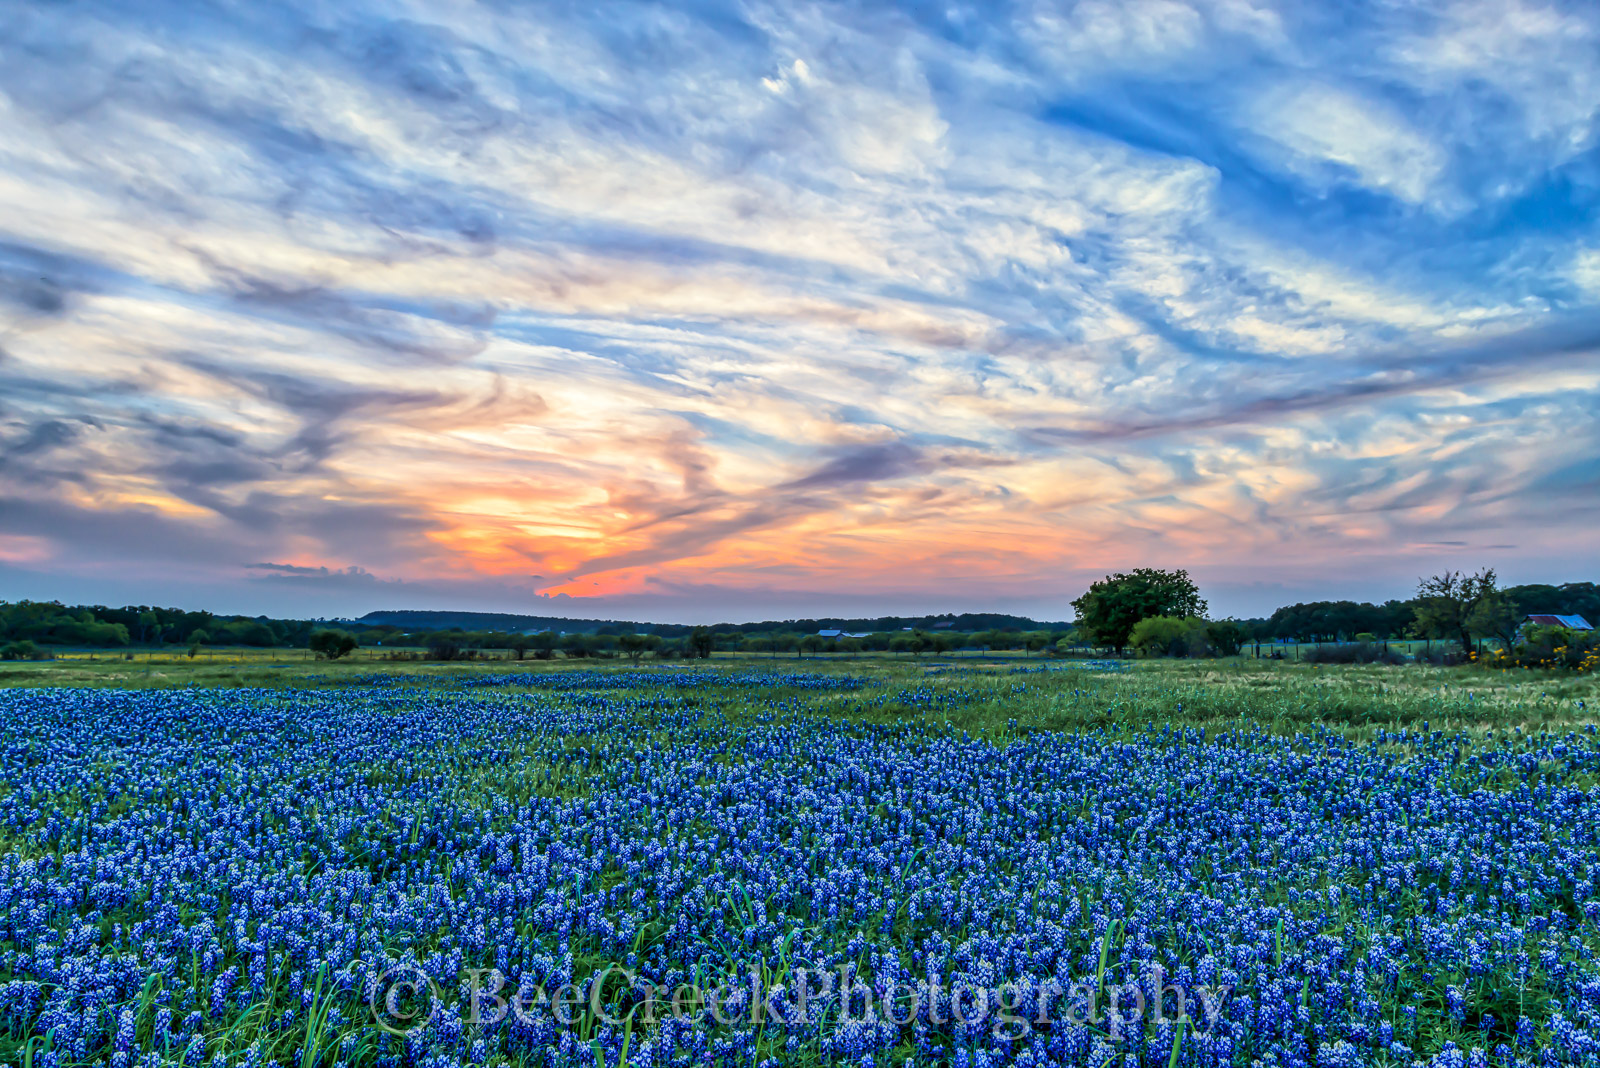 bluebonnets, hill country, texas, sunset, glow, clouds, sky, colorful, awesome, blue coloful, landscape, rural landscape, old farm house, PEC office, , photo